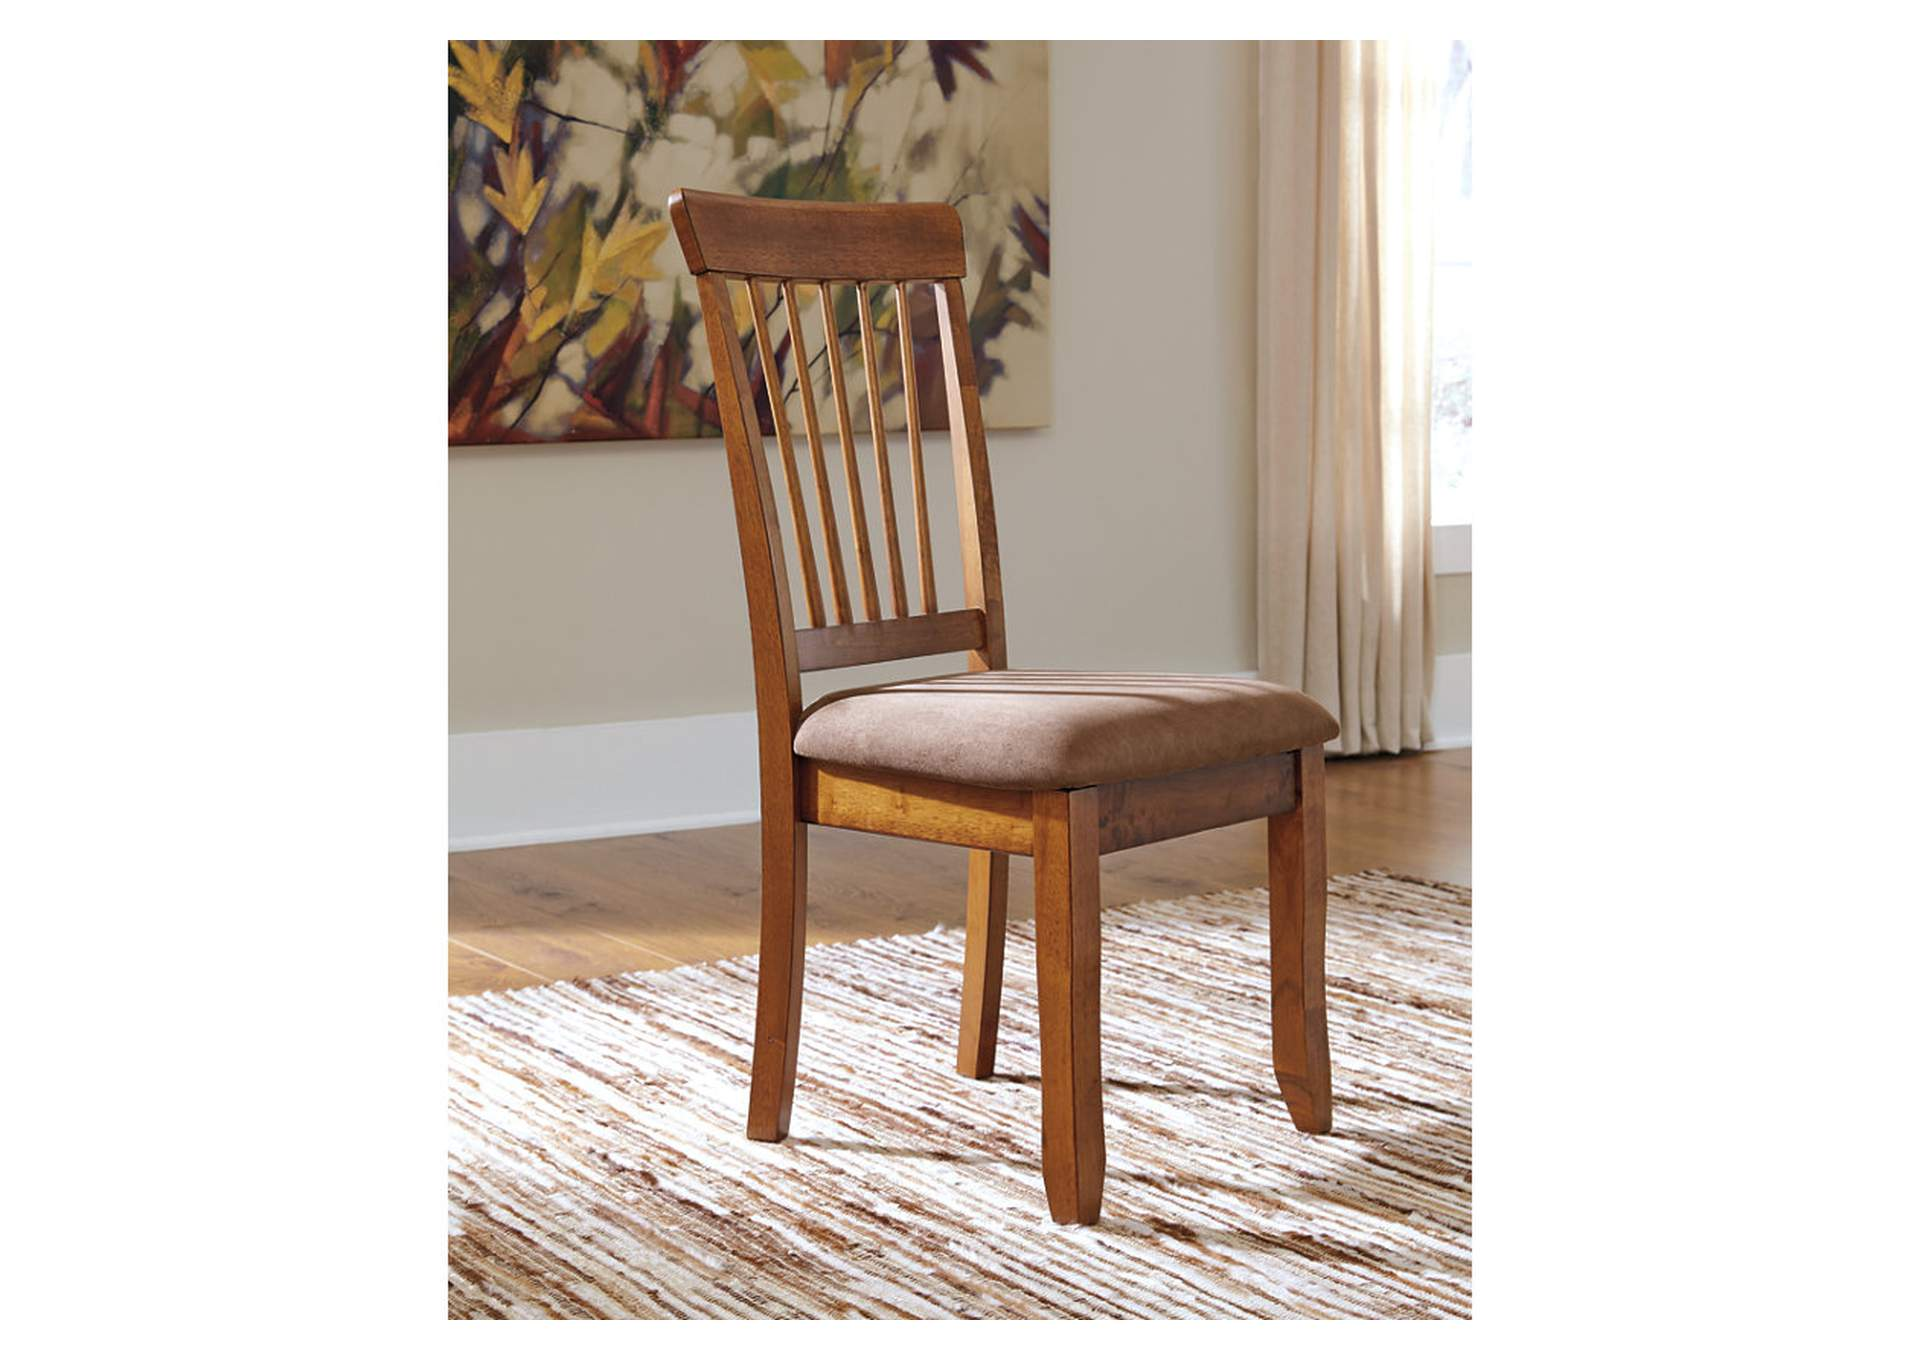 Berringer Single Dining Room Chair,Ashley